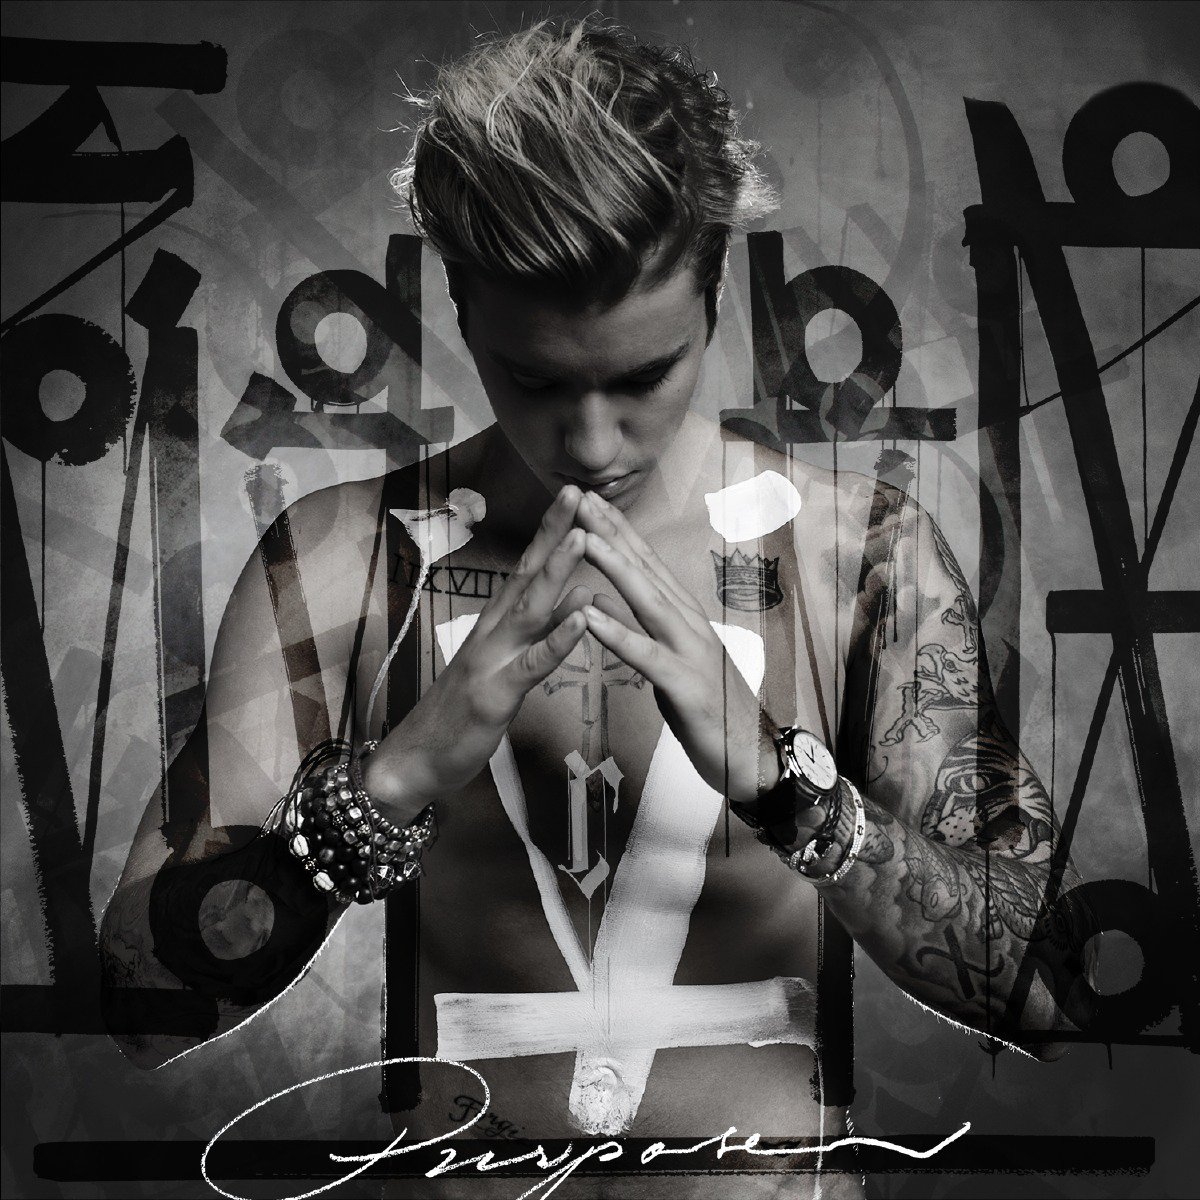 .@justinbieber scored his SIXTH No. 1 studio album this week w/ #Purpose making its debut atop the @billboard chart! https://t.co/QwXxer5ACF